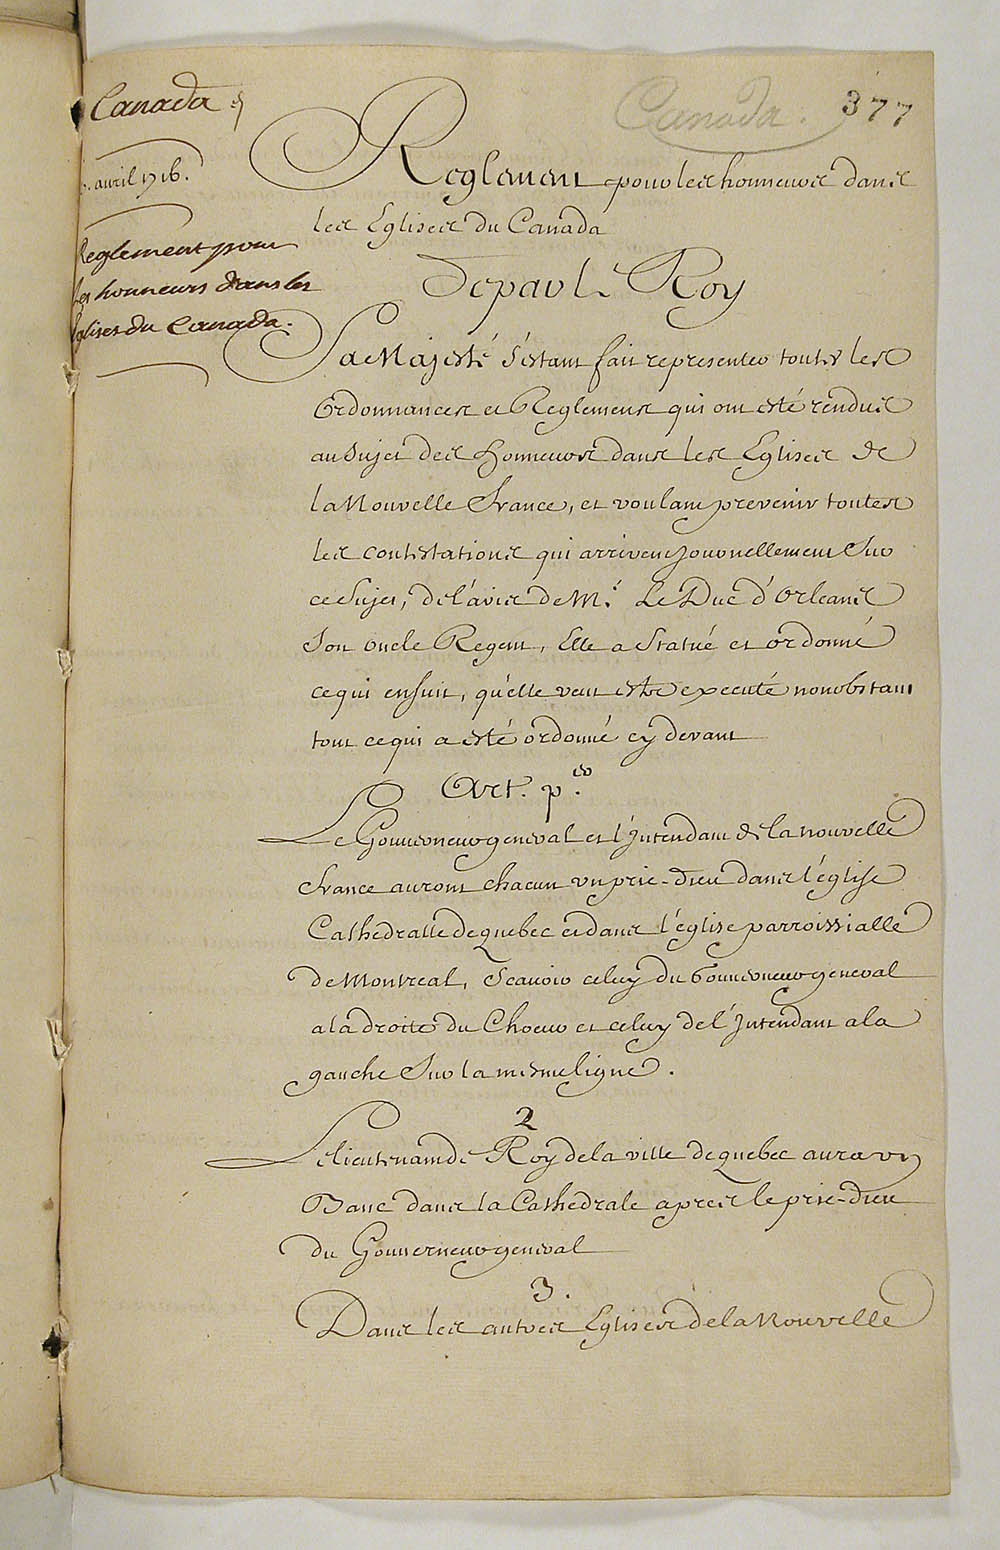 Regulation concerning honours in the Churches of Canada, April 27, 1716, FR CAOM COL C11A 106 fol. 377-380